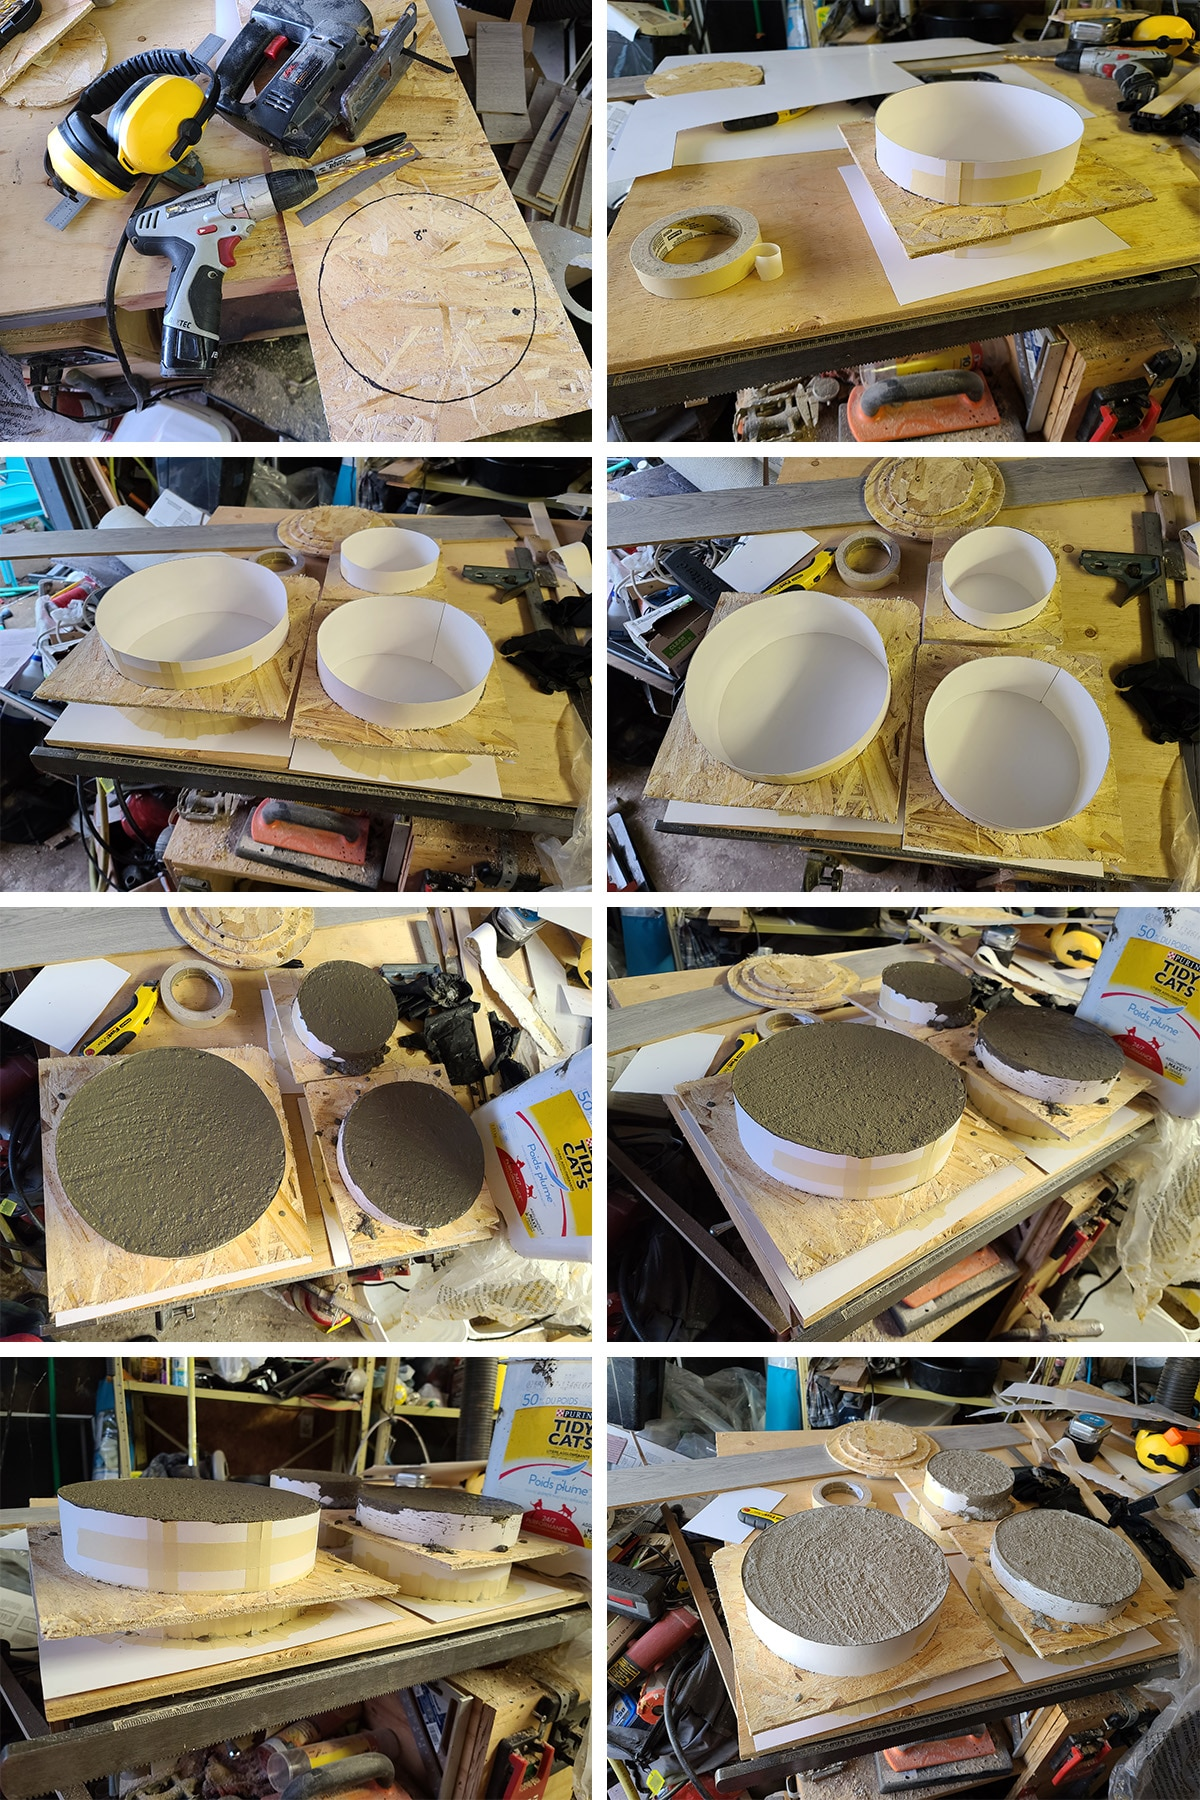 An 8 part image showing the cake layers being molded from cement.